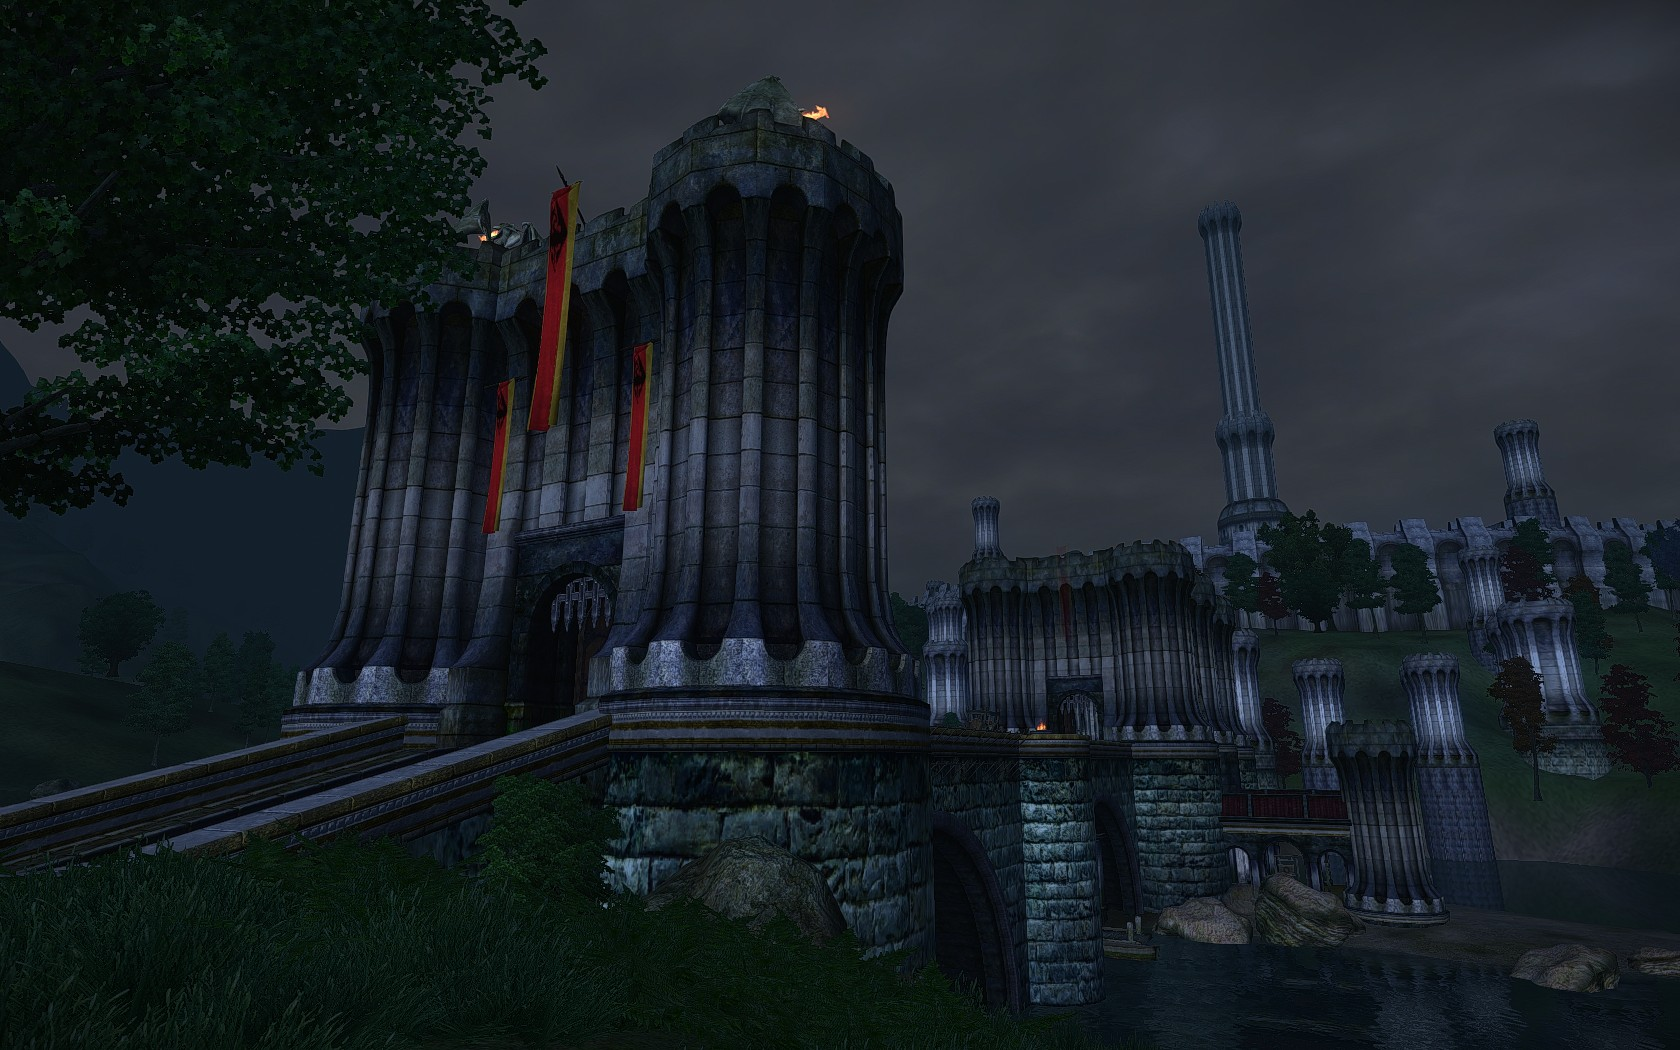 Talos Bridge Gatehouse